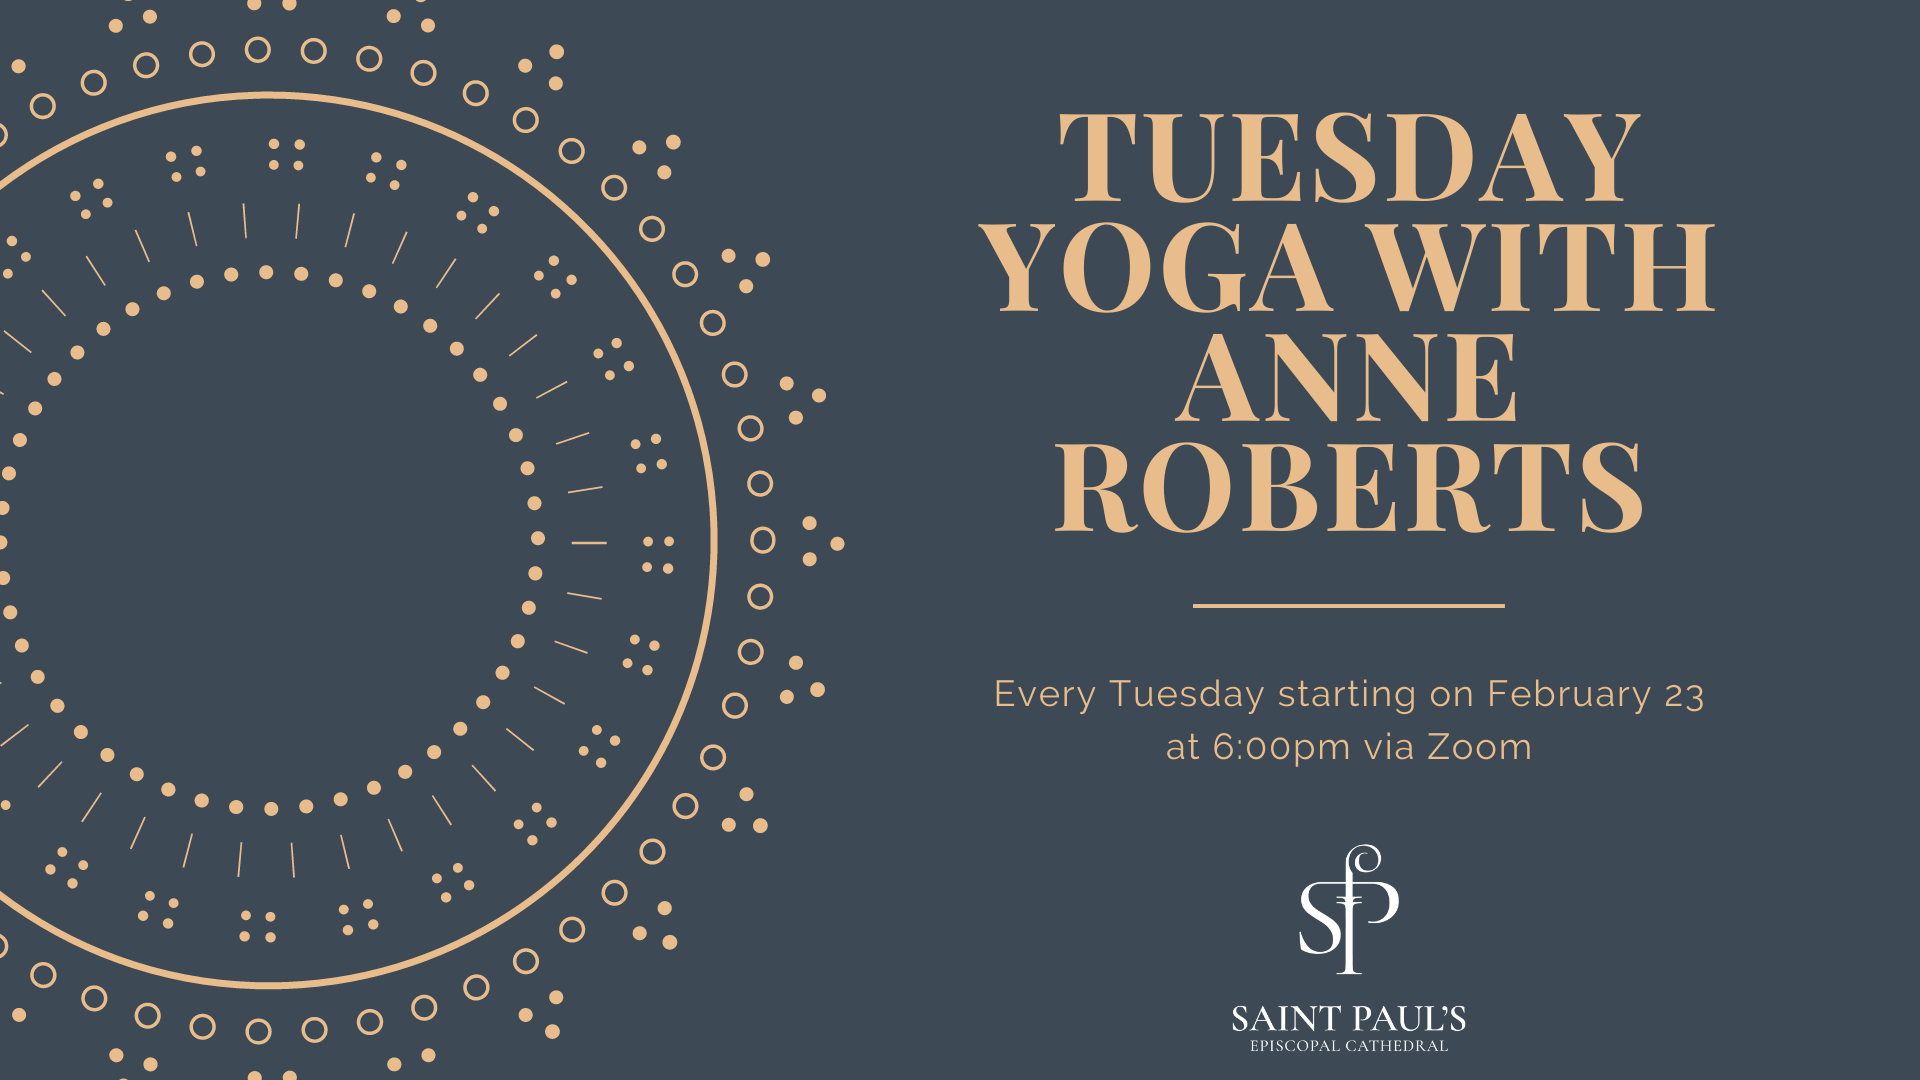 tuesday-yoga-with-anne-roberts-1_609